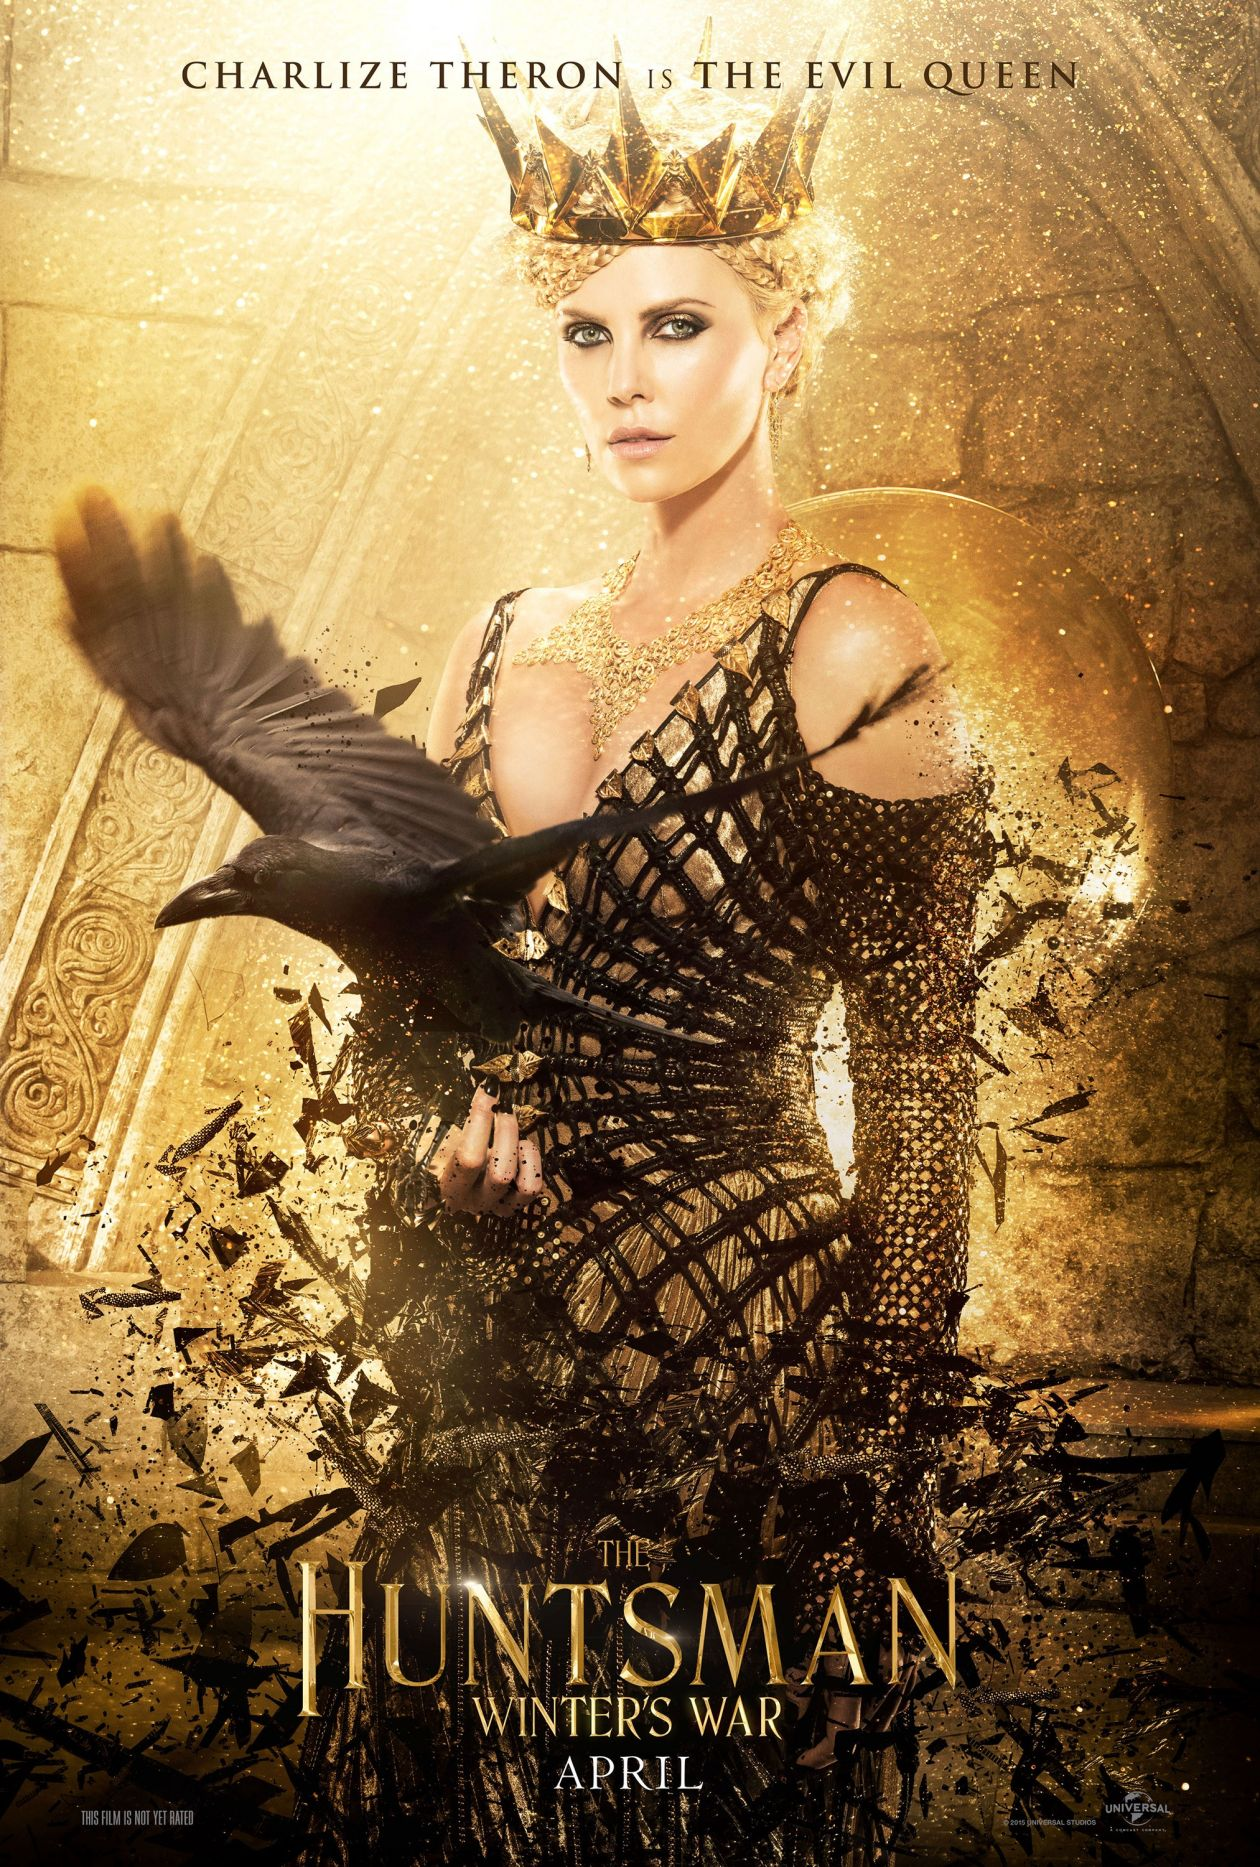 Charlize Theron actress | The Evil Queen | The Huntsman: Winter's War / Cedric Nicolas-Troyan 2016 Movie Poster Affiche film